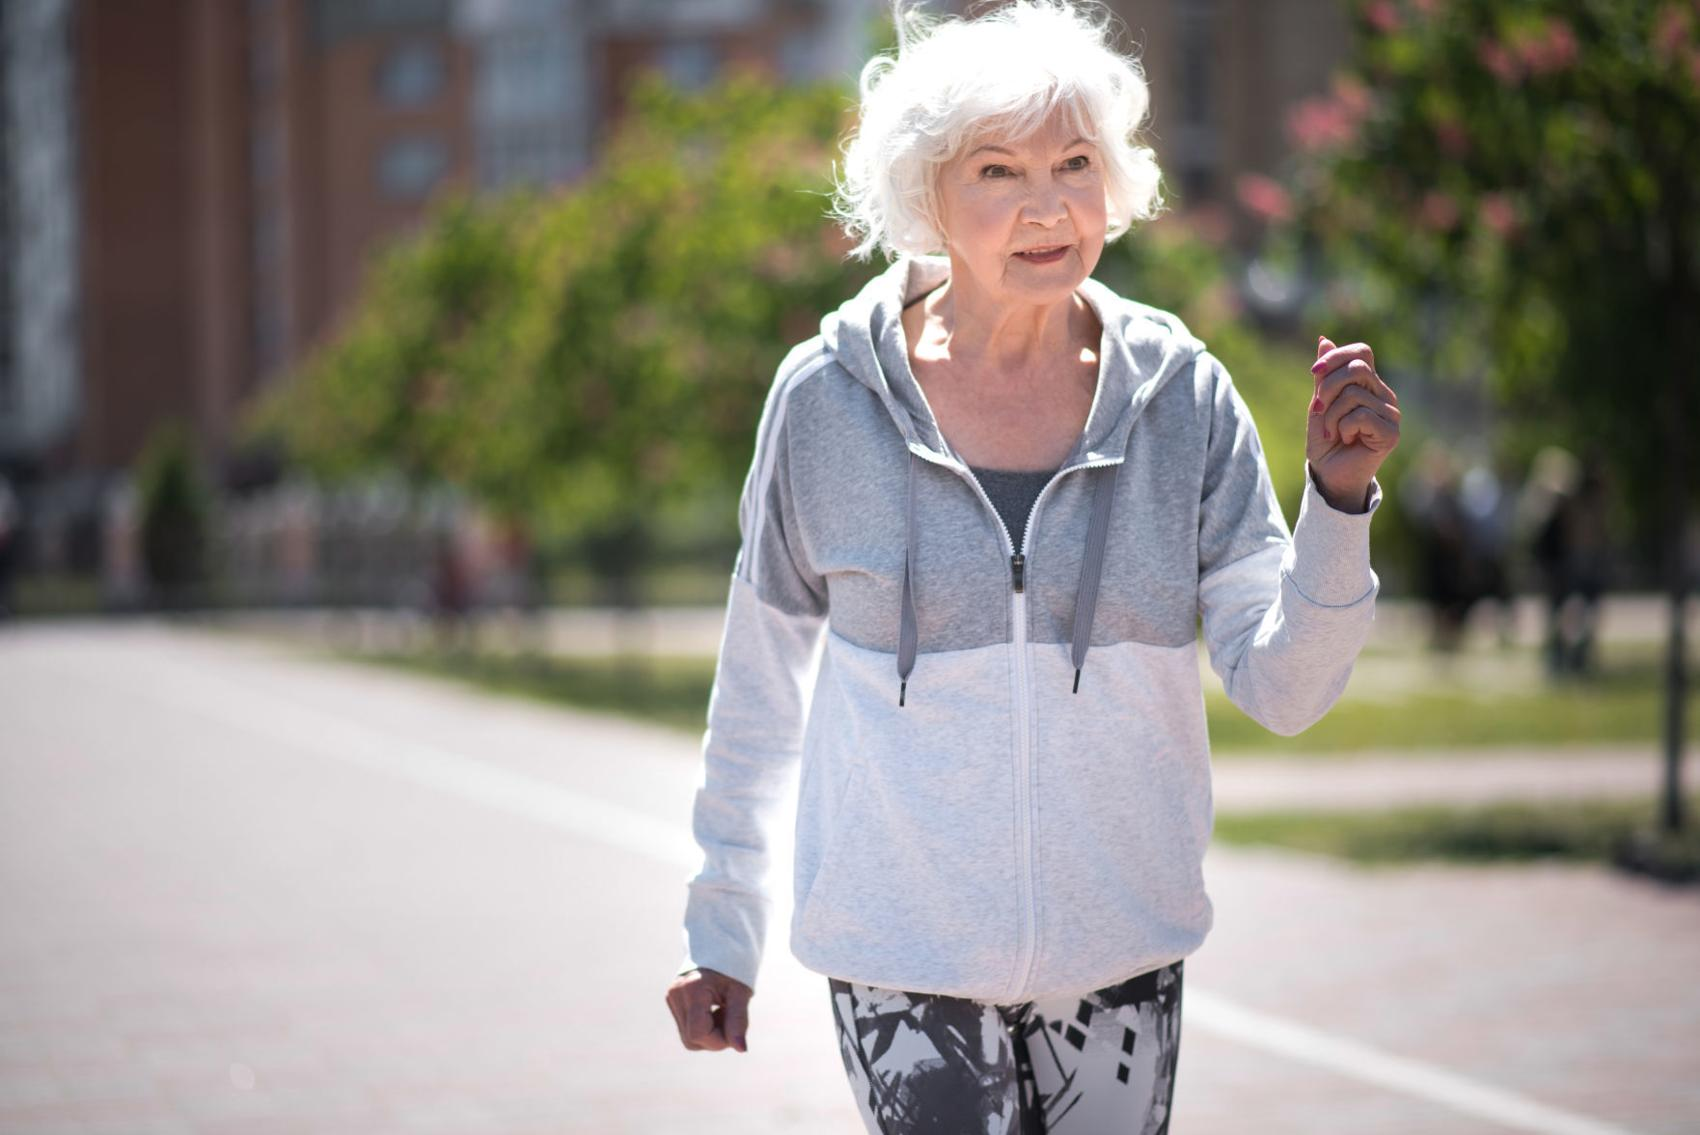 Achy joints? Don't pass on exercise. Embrace it!